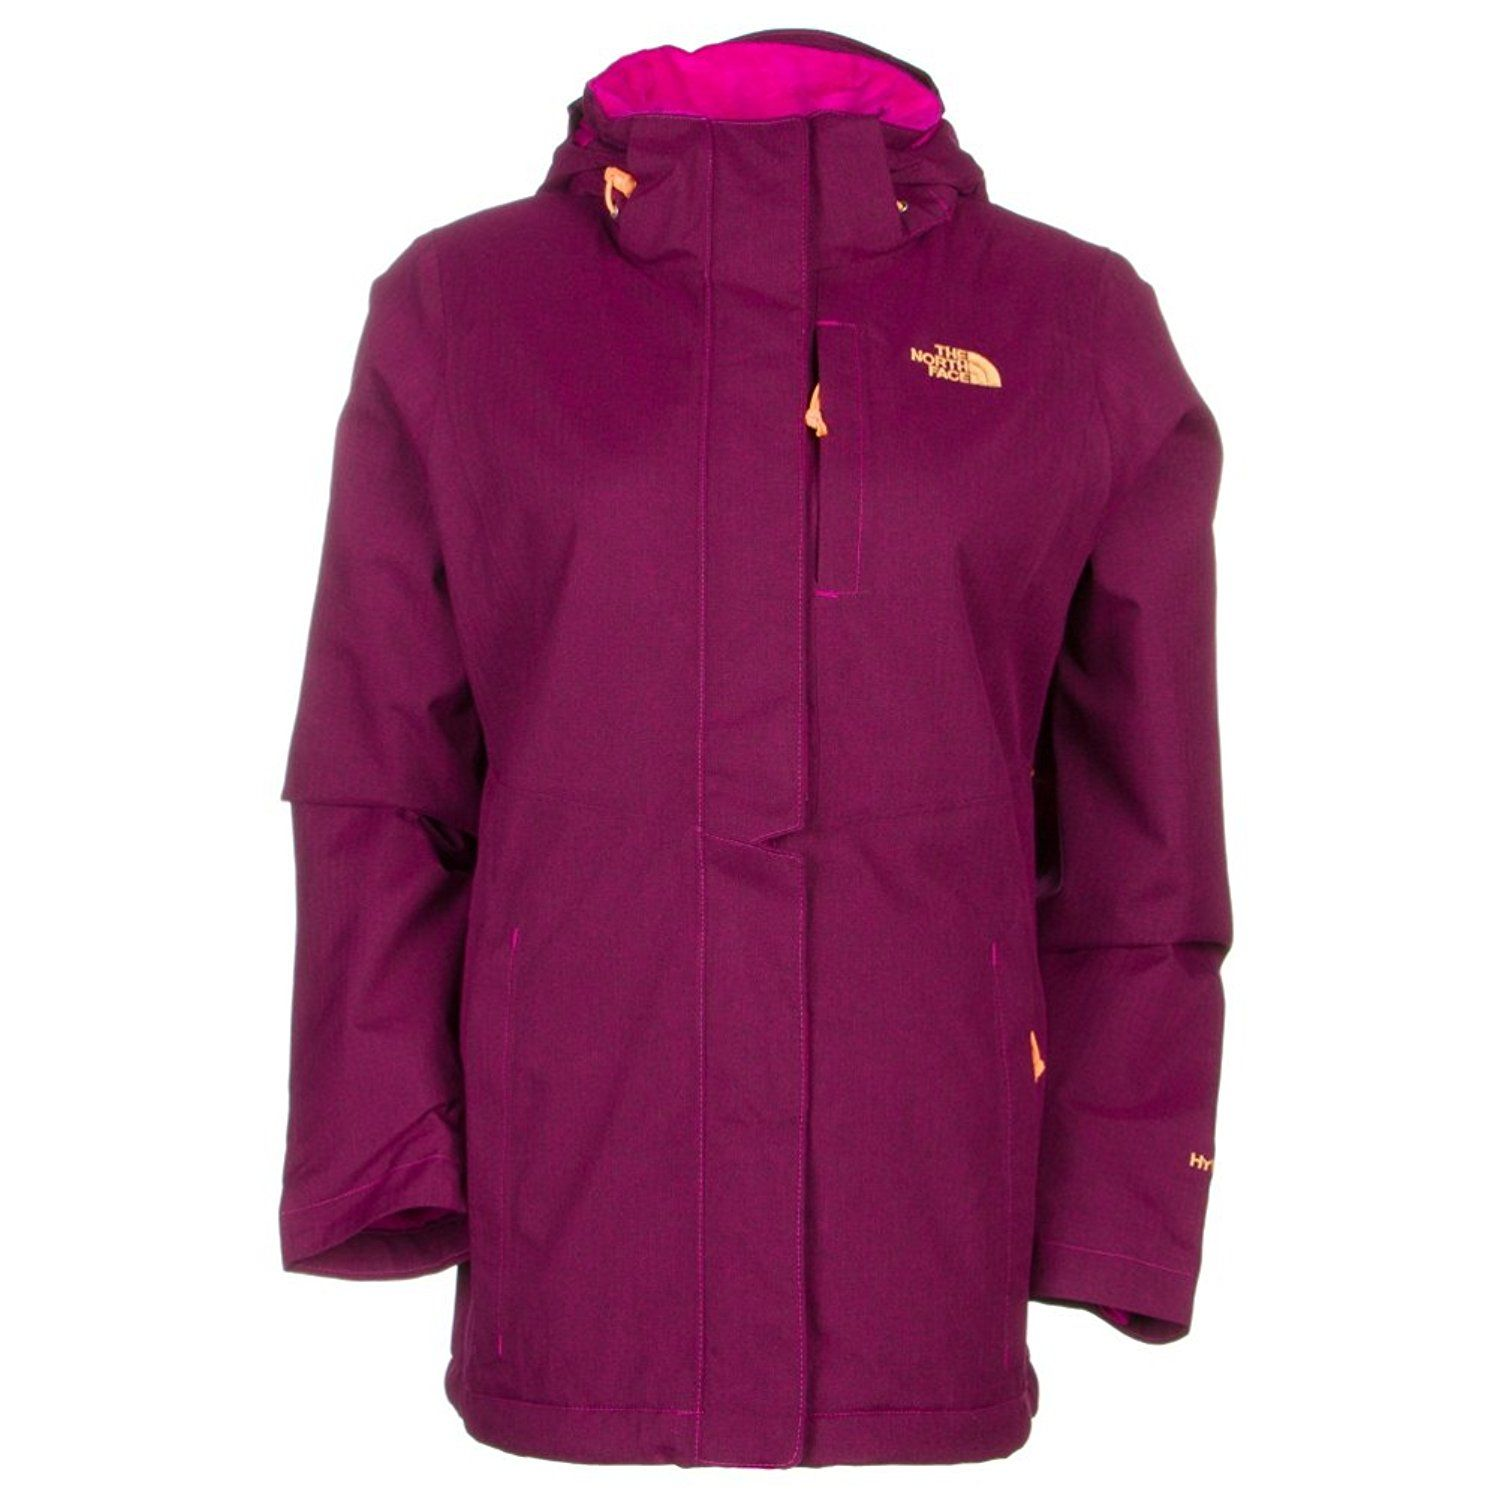 The North Face Inlux Insulated Jacket Womens At Amazon Women S Coats Shop Https Www Amazon Com Gp Insulated Jacket Women Jackets For Women Insulated Jackets [ 1500 x 1500 Pixel ]